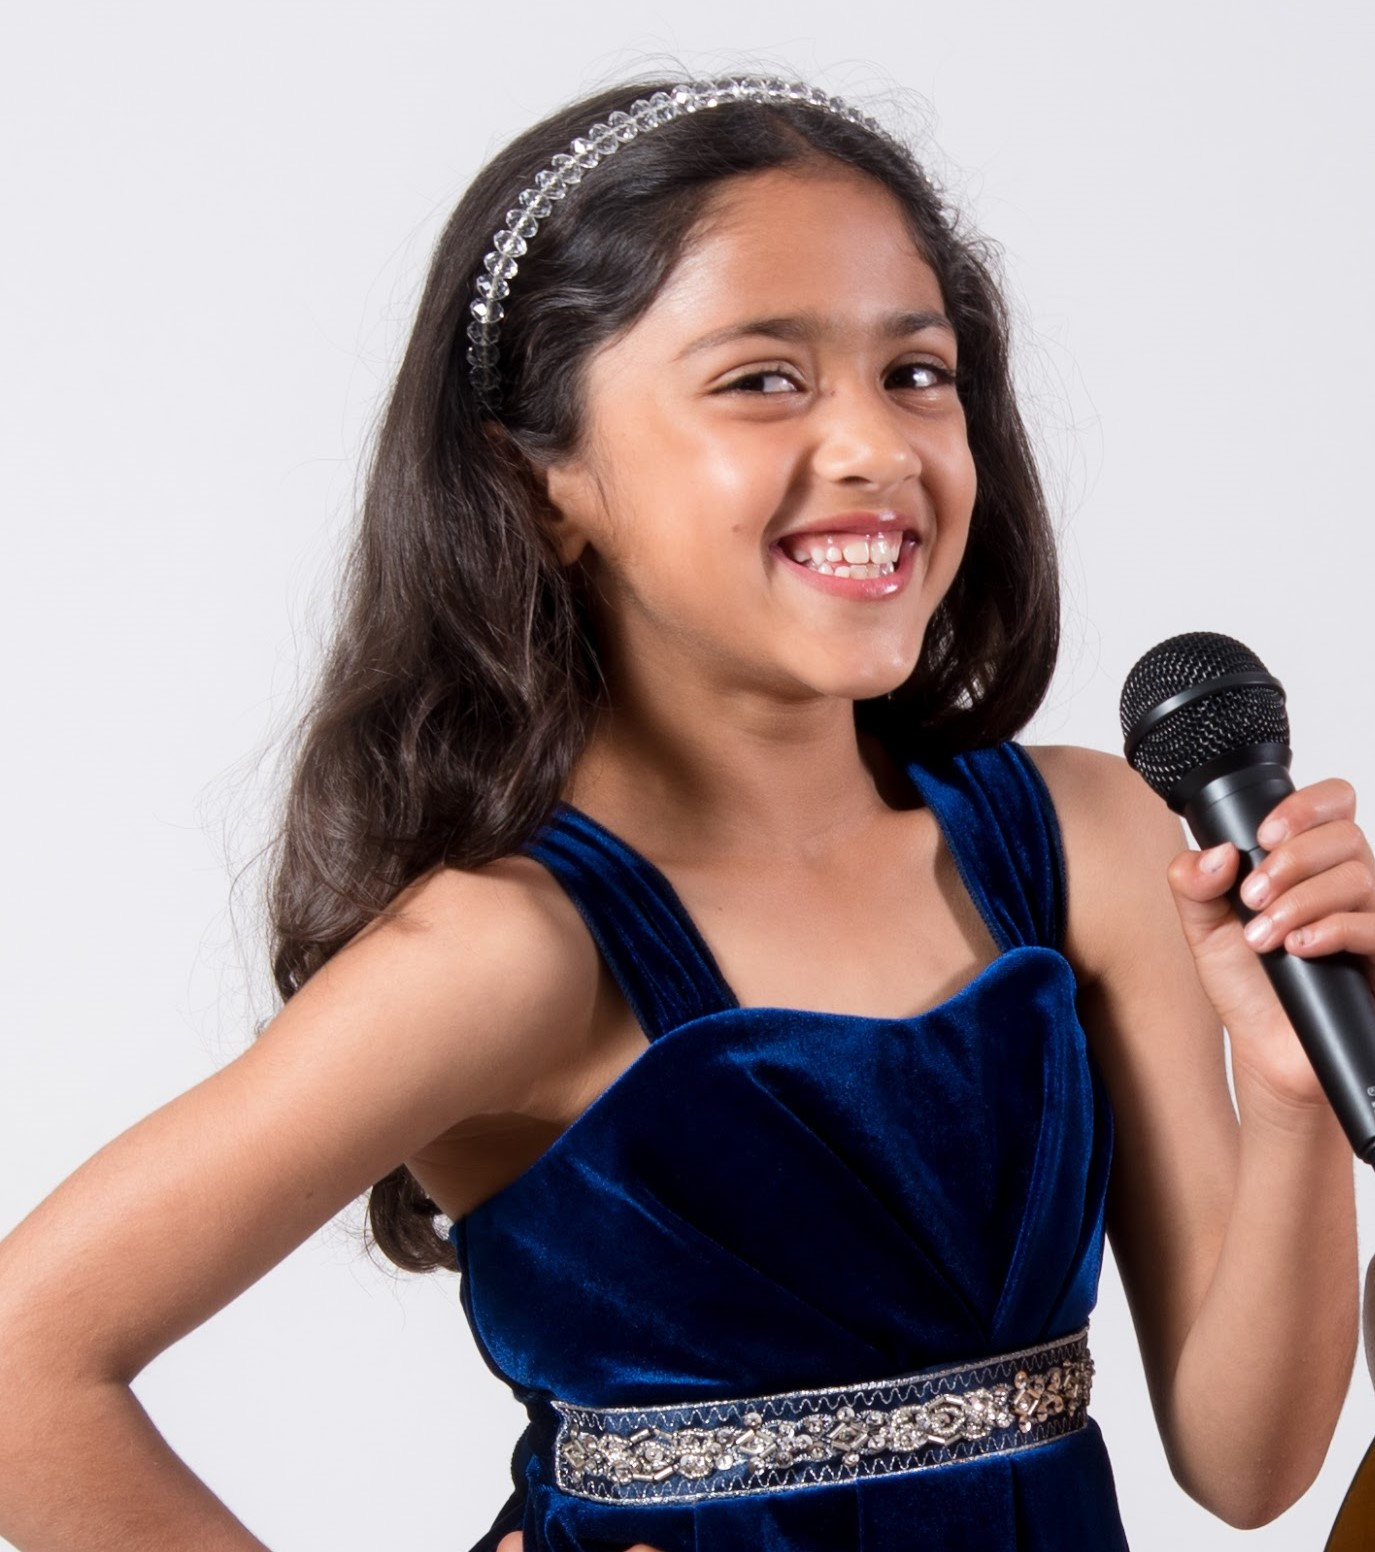 voice and singing lessons near me for kids and adults in tulsa ok